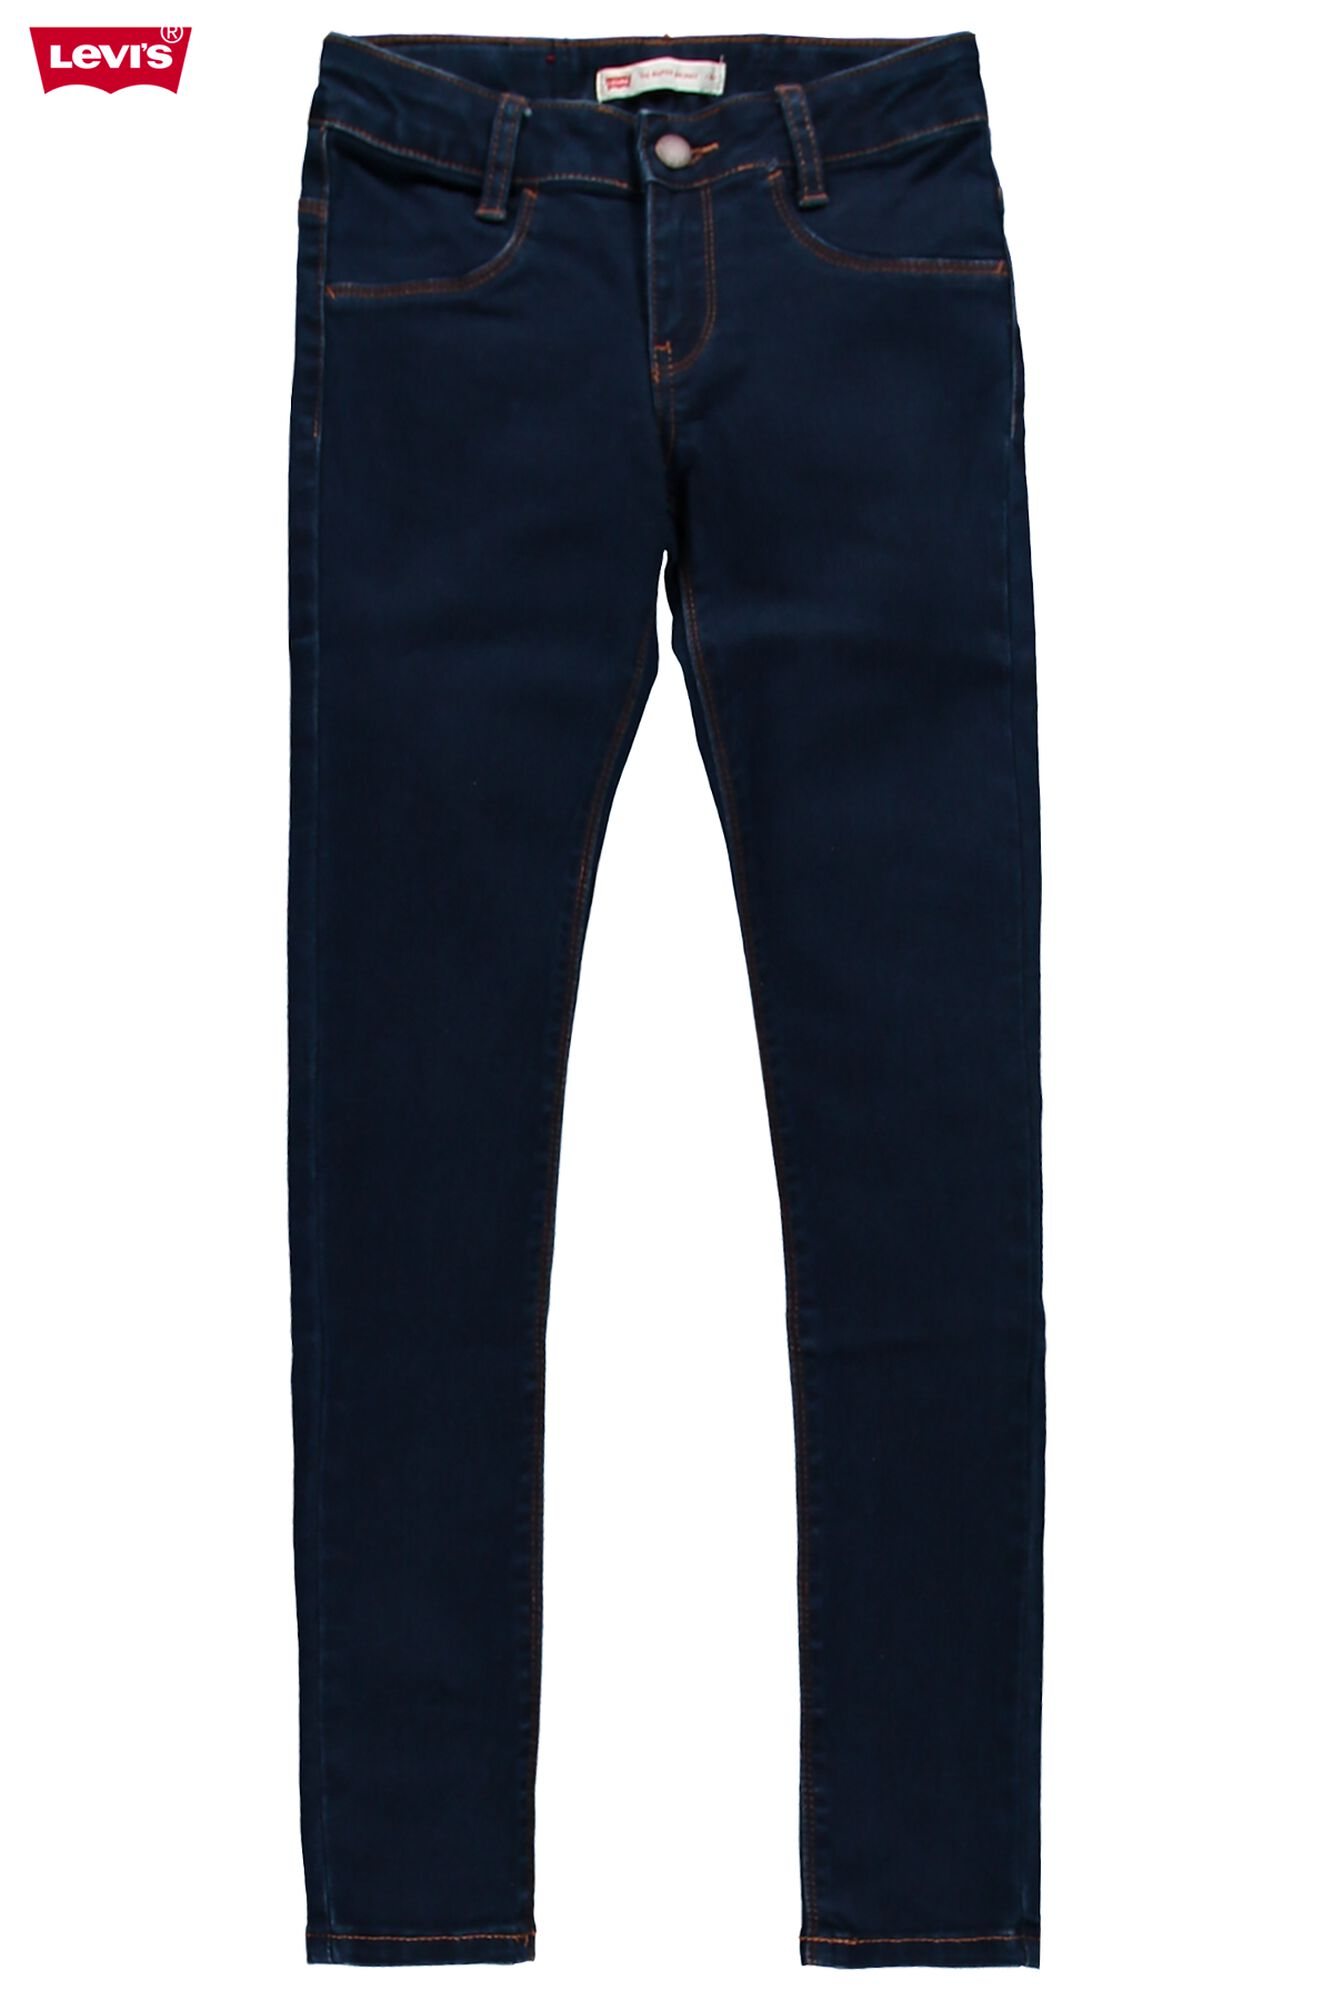 check out ec201 604ac Girls Jeans Levi's 710 Super skinny Blue Buy Online